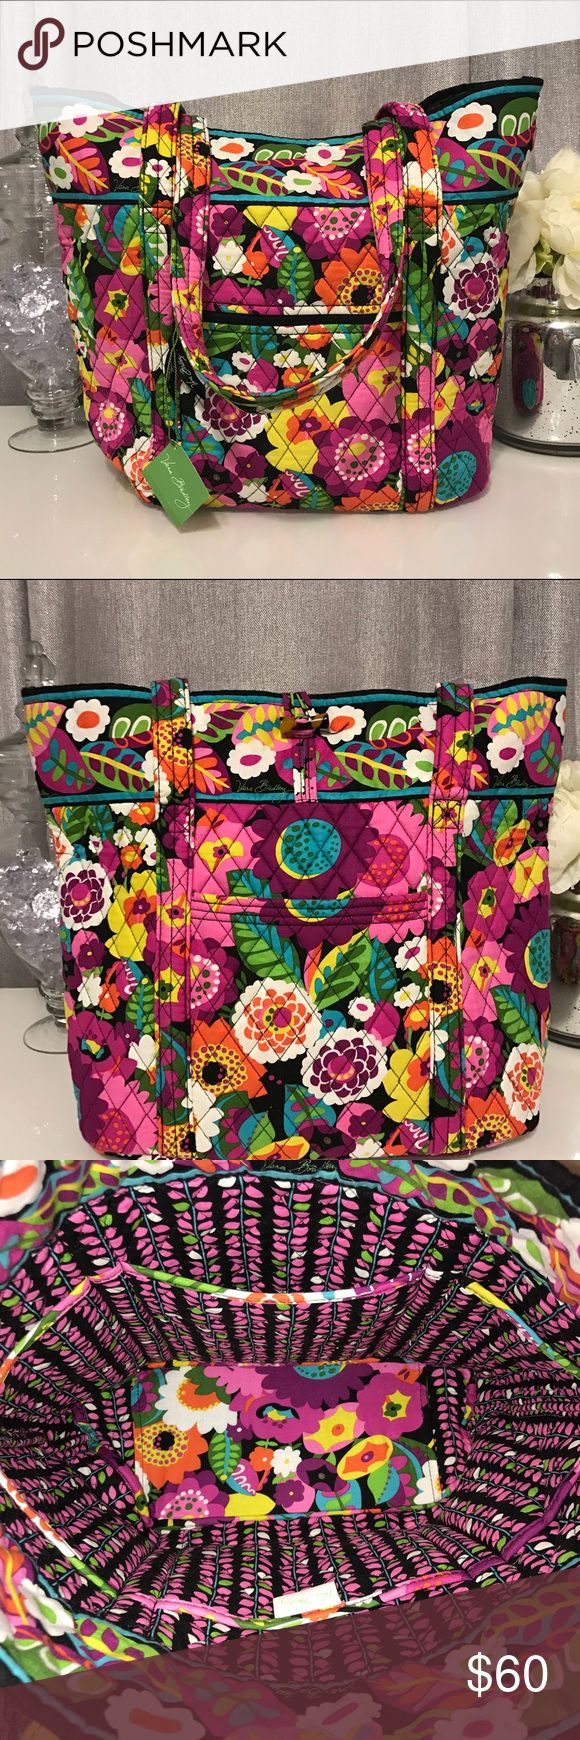 NWT Vera Bradley Tote Bag Va Va Bloom This Vera Bradley tote is in the pattern Va Va Bloom. It has never been used with tags still attached! Large slip pocket in the front, zip pocket in the back, and six slip pockets inside! Feel free to make offers! Vera Bradley Bags Totes